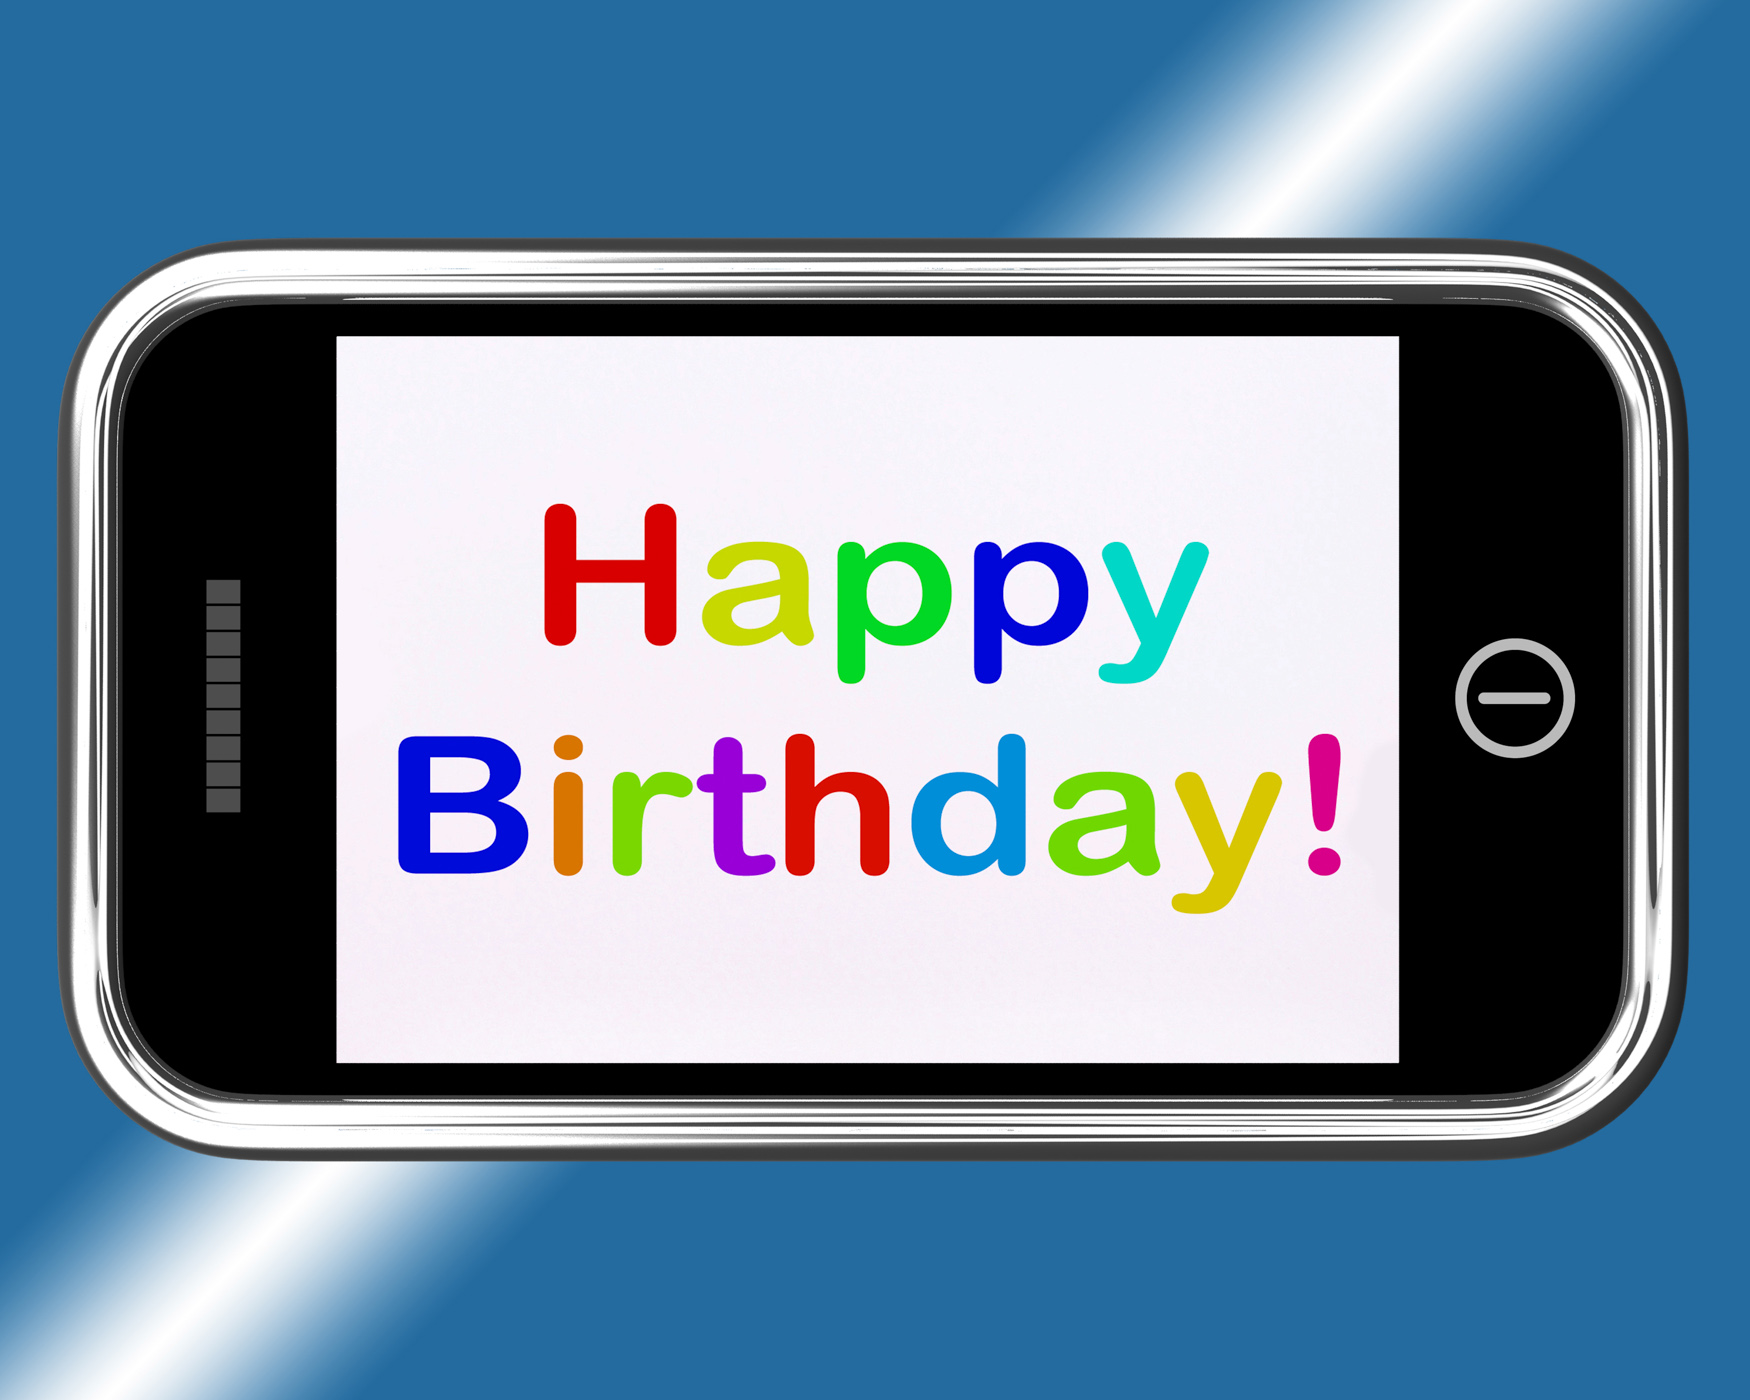 Free photo happy birthday sign on mobile phone shows internet happy birthday sign on mobile phone shows internet greeting phone online multicolored m4hsunfo